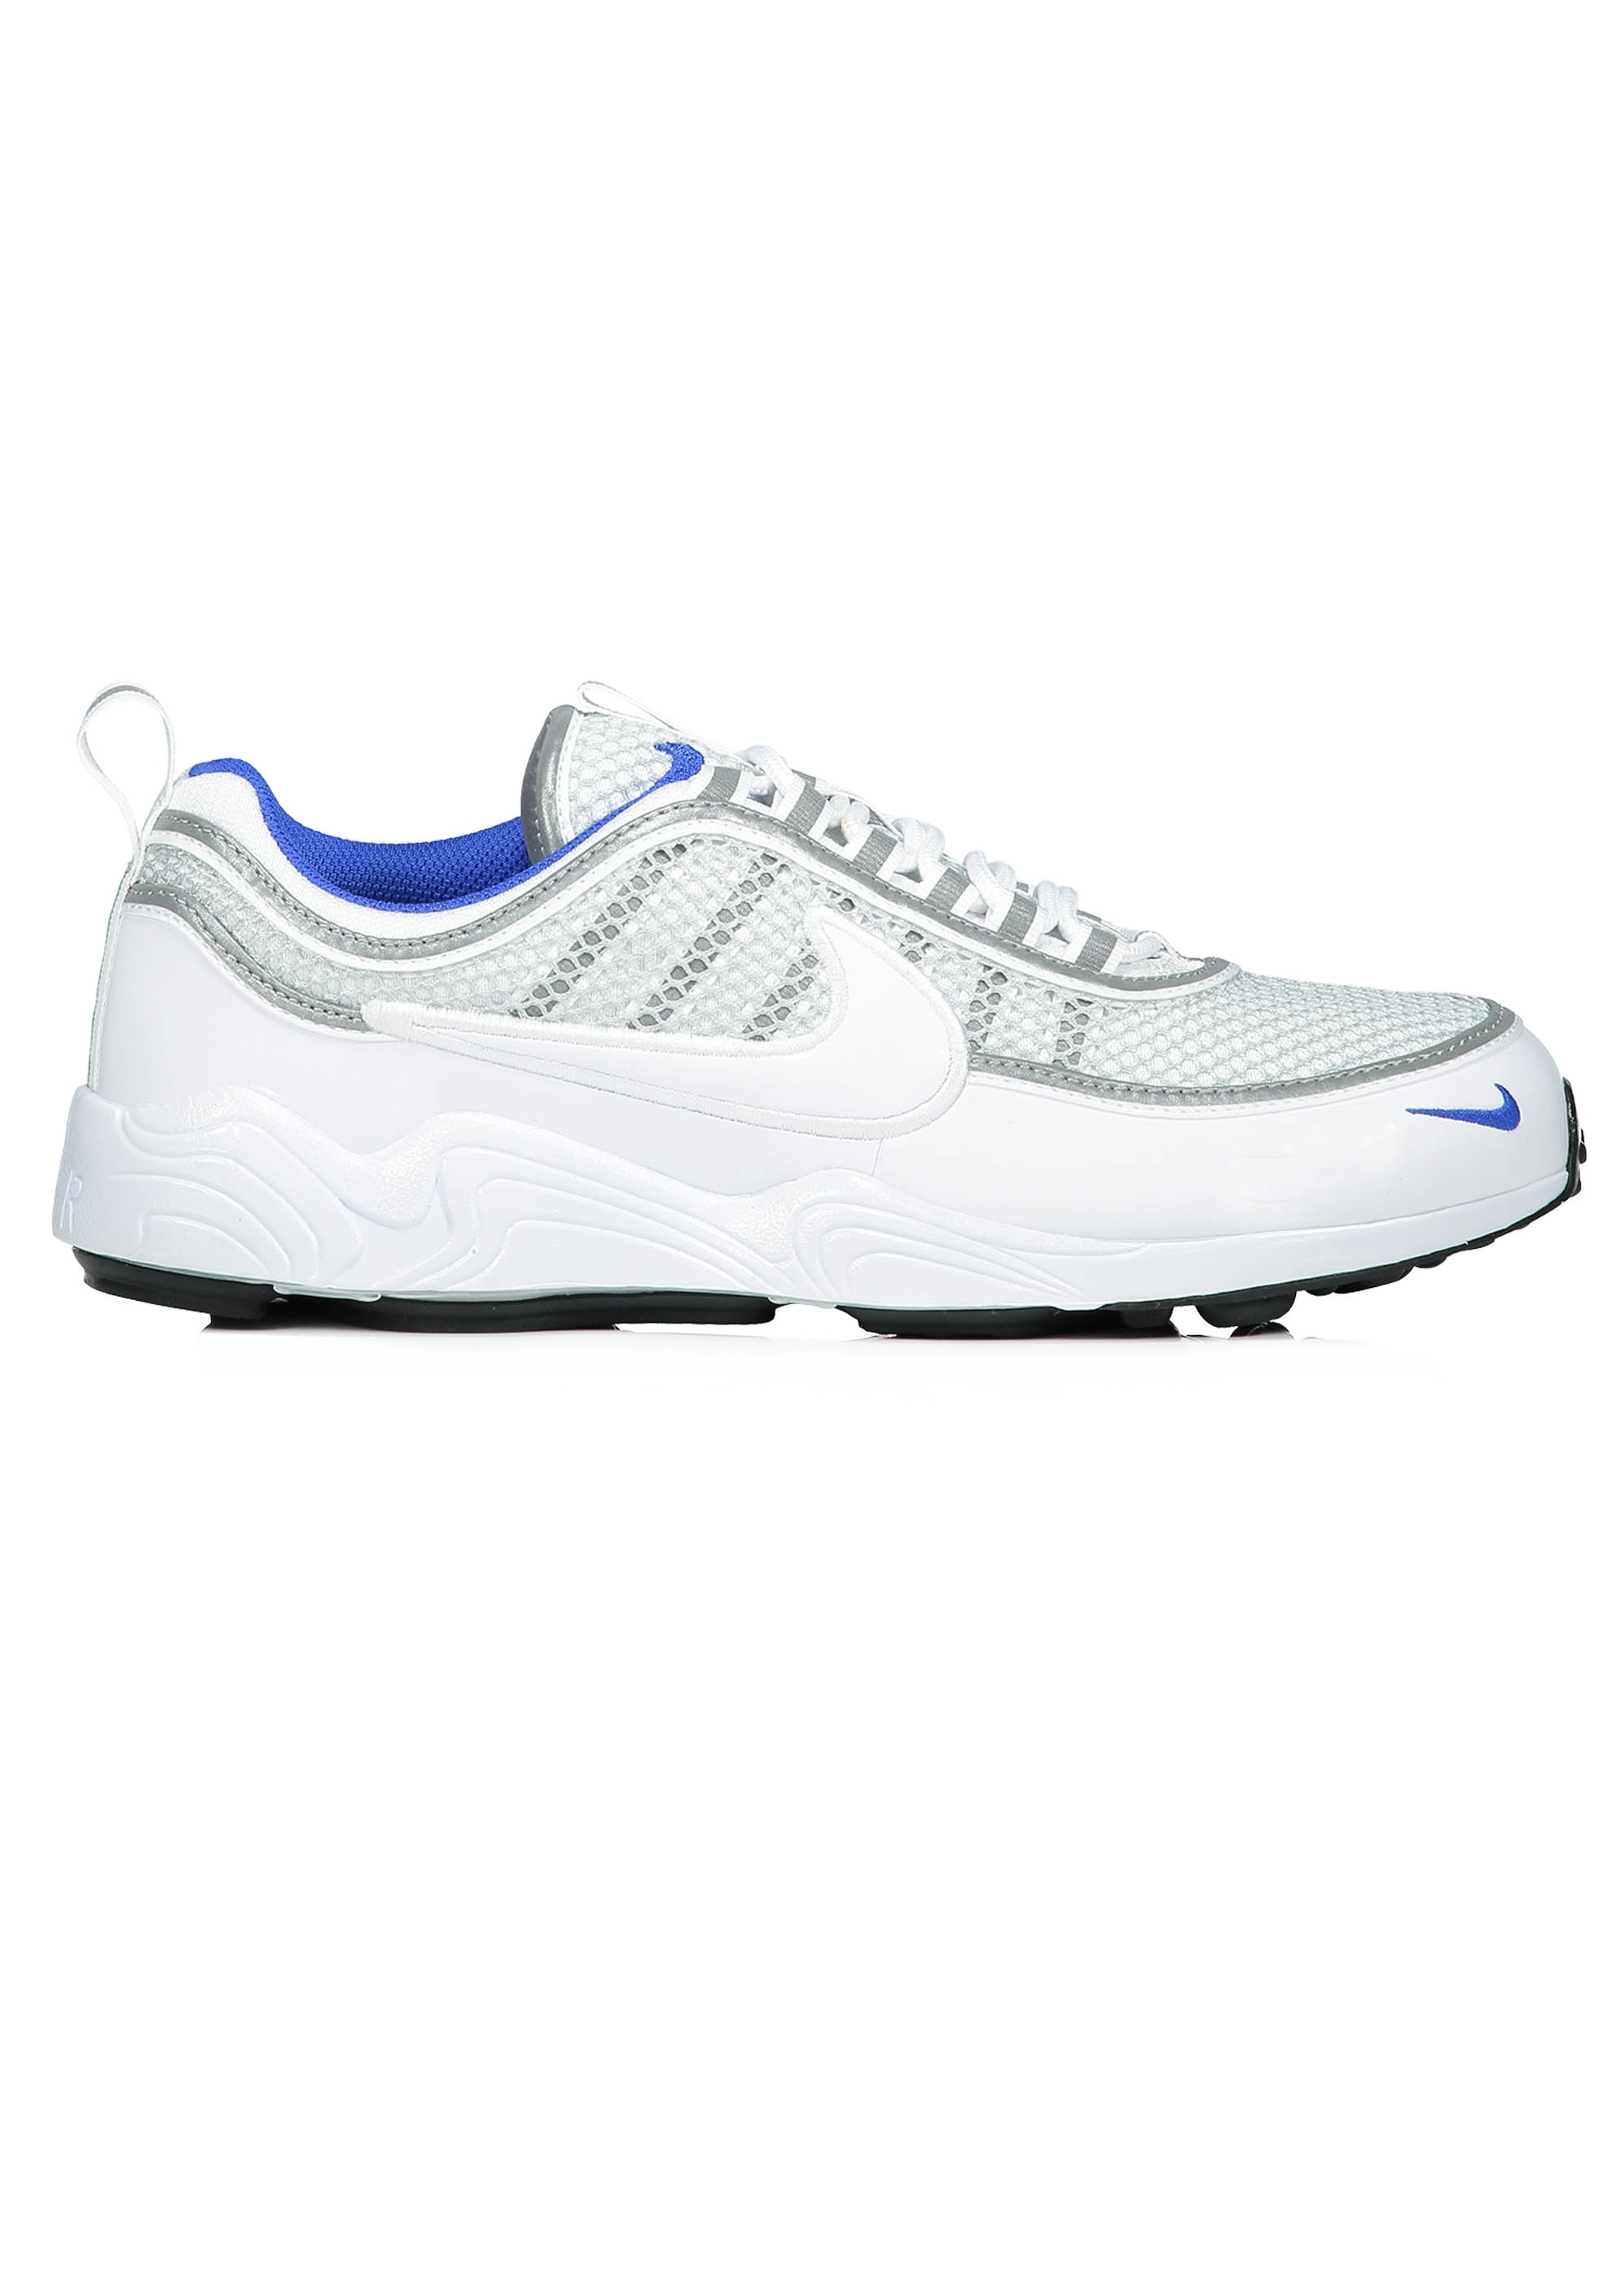 buy cheap another chance innovative design Nike Footwear Air Zoom Spiridon 16 - White